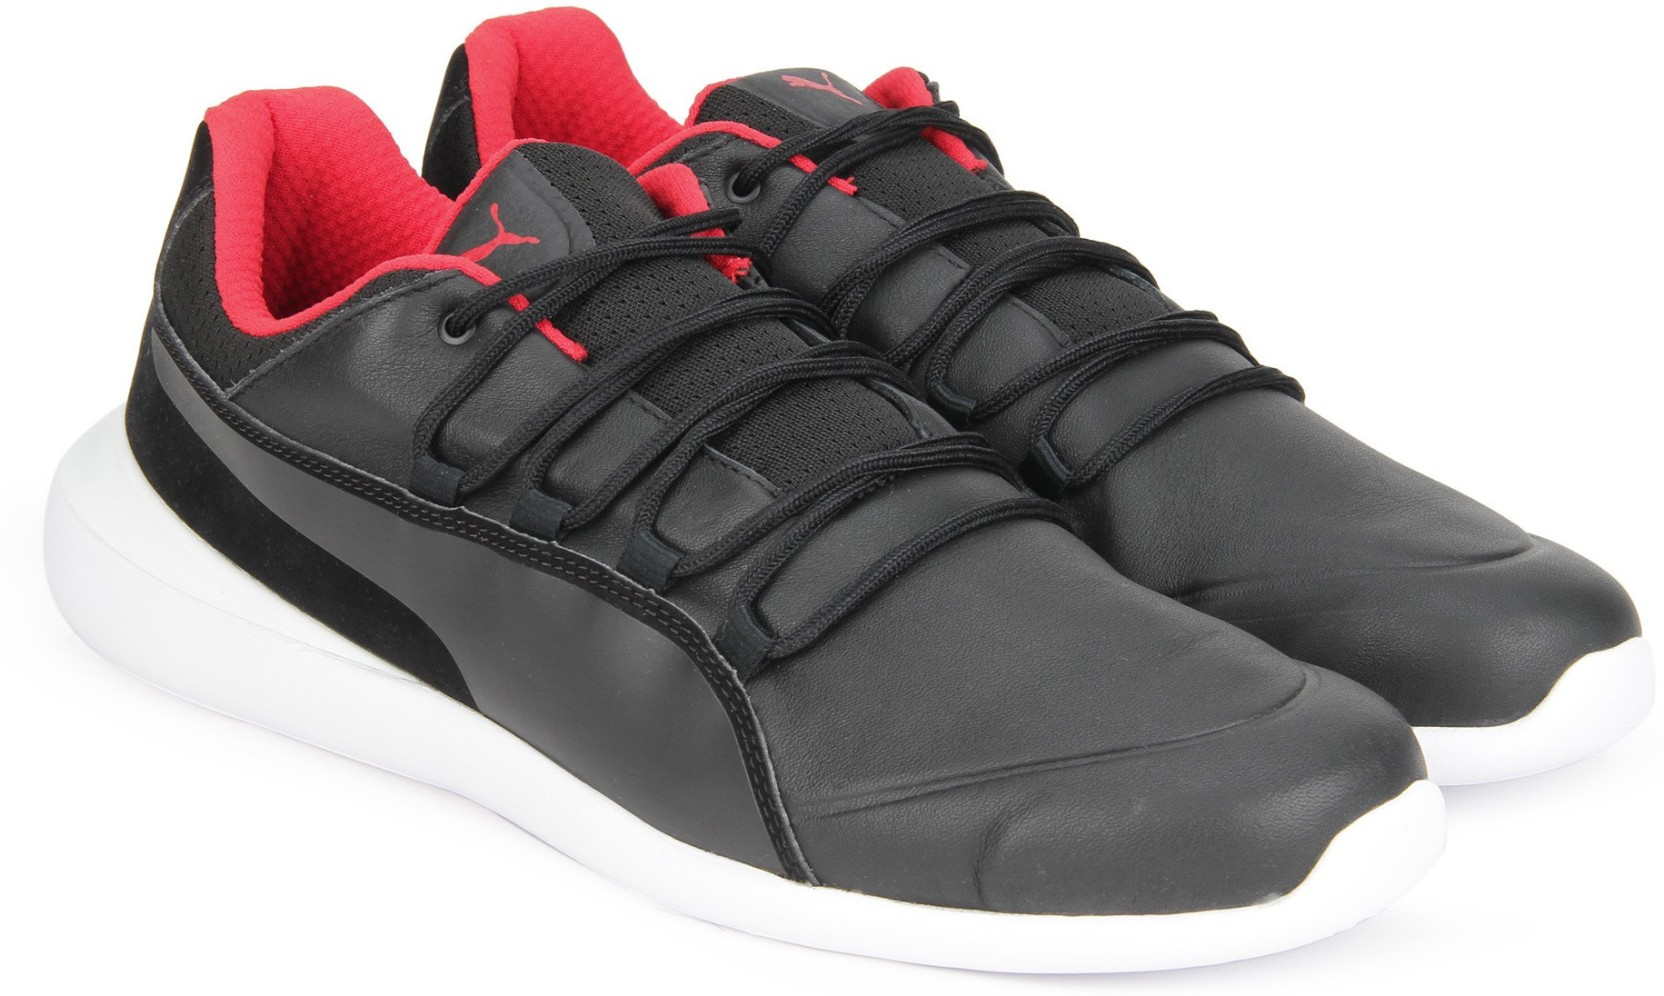 Puma Ferrari SF Evo Cat Sneakers For Men - Buy Puma Black-Puma Black ... 9064d8472